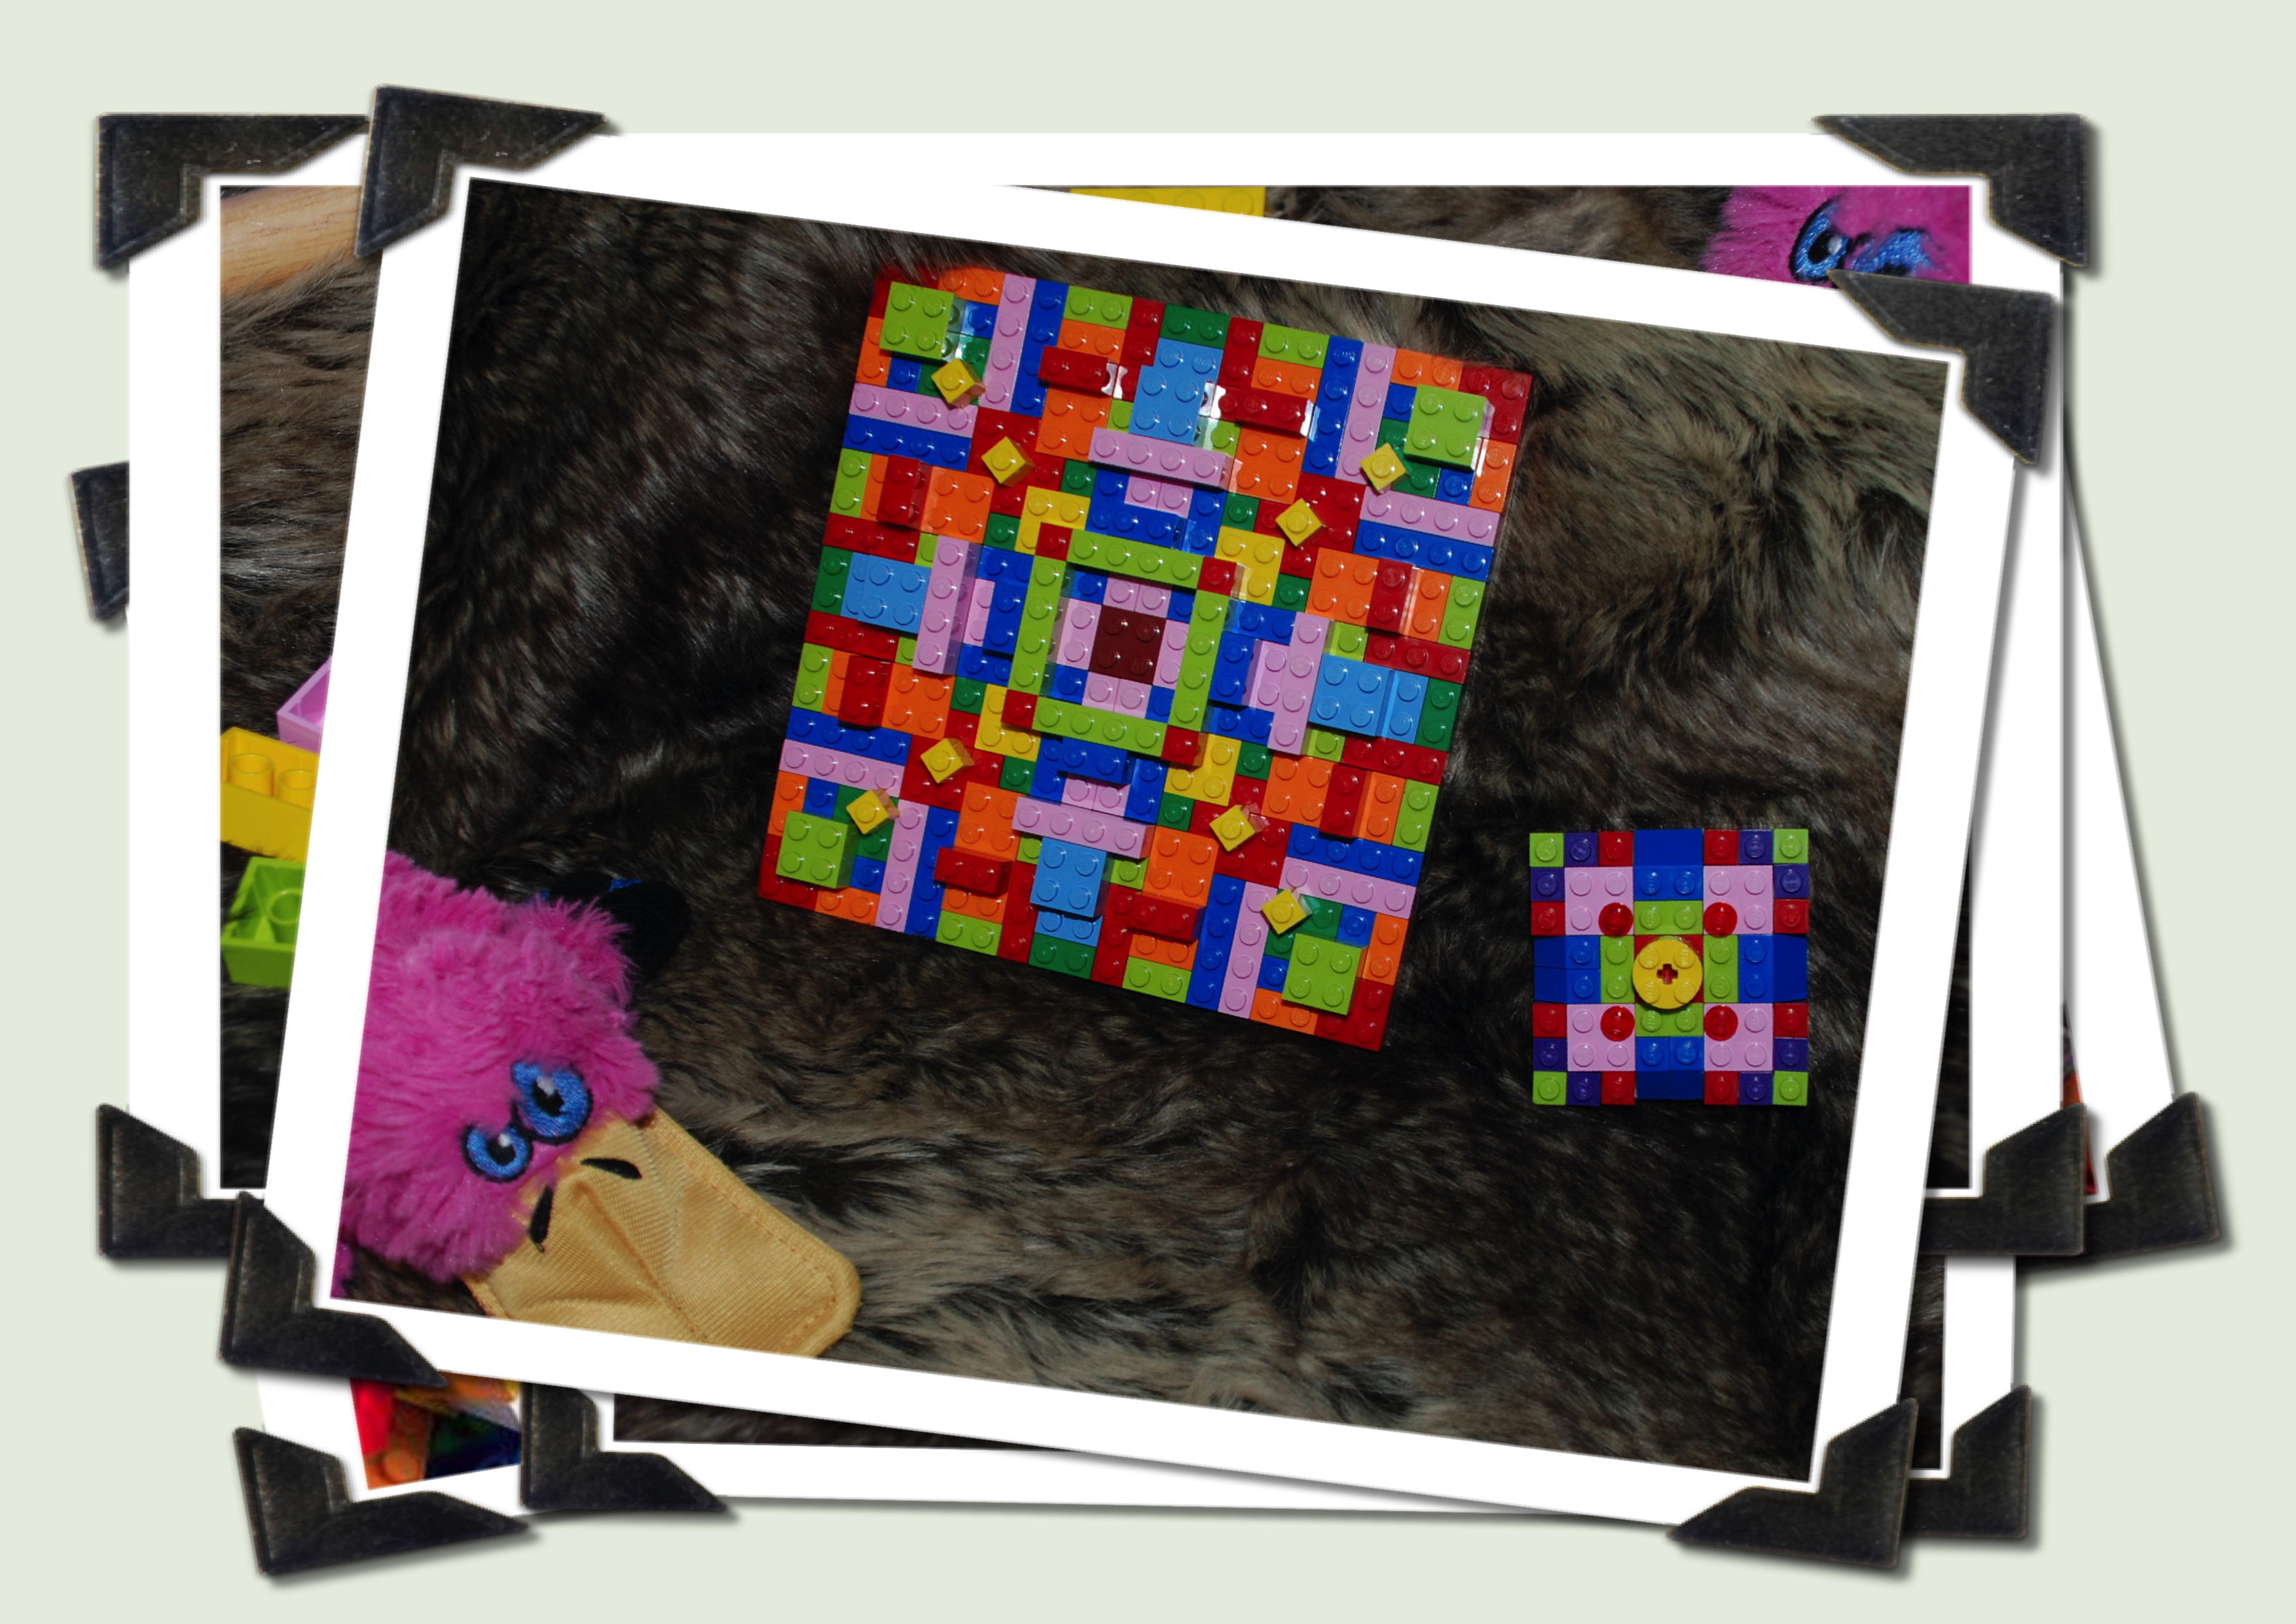 A pile of photos with only the top picture visible. The photo is Anno the pink toy platypus next to two lego mosaic patterns - one large